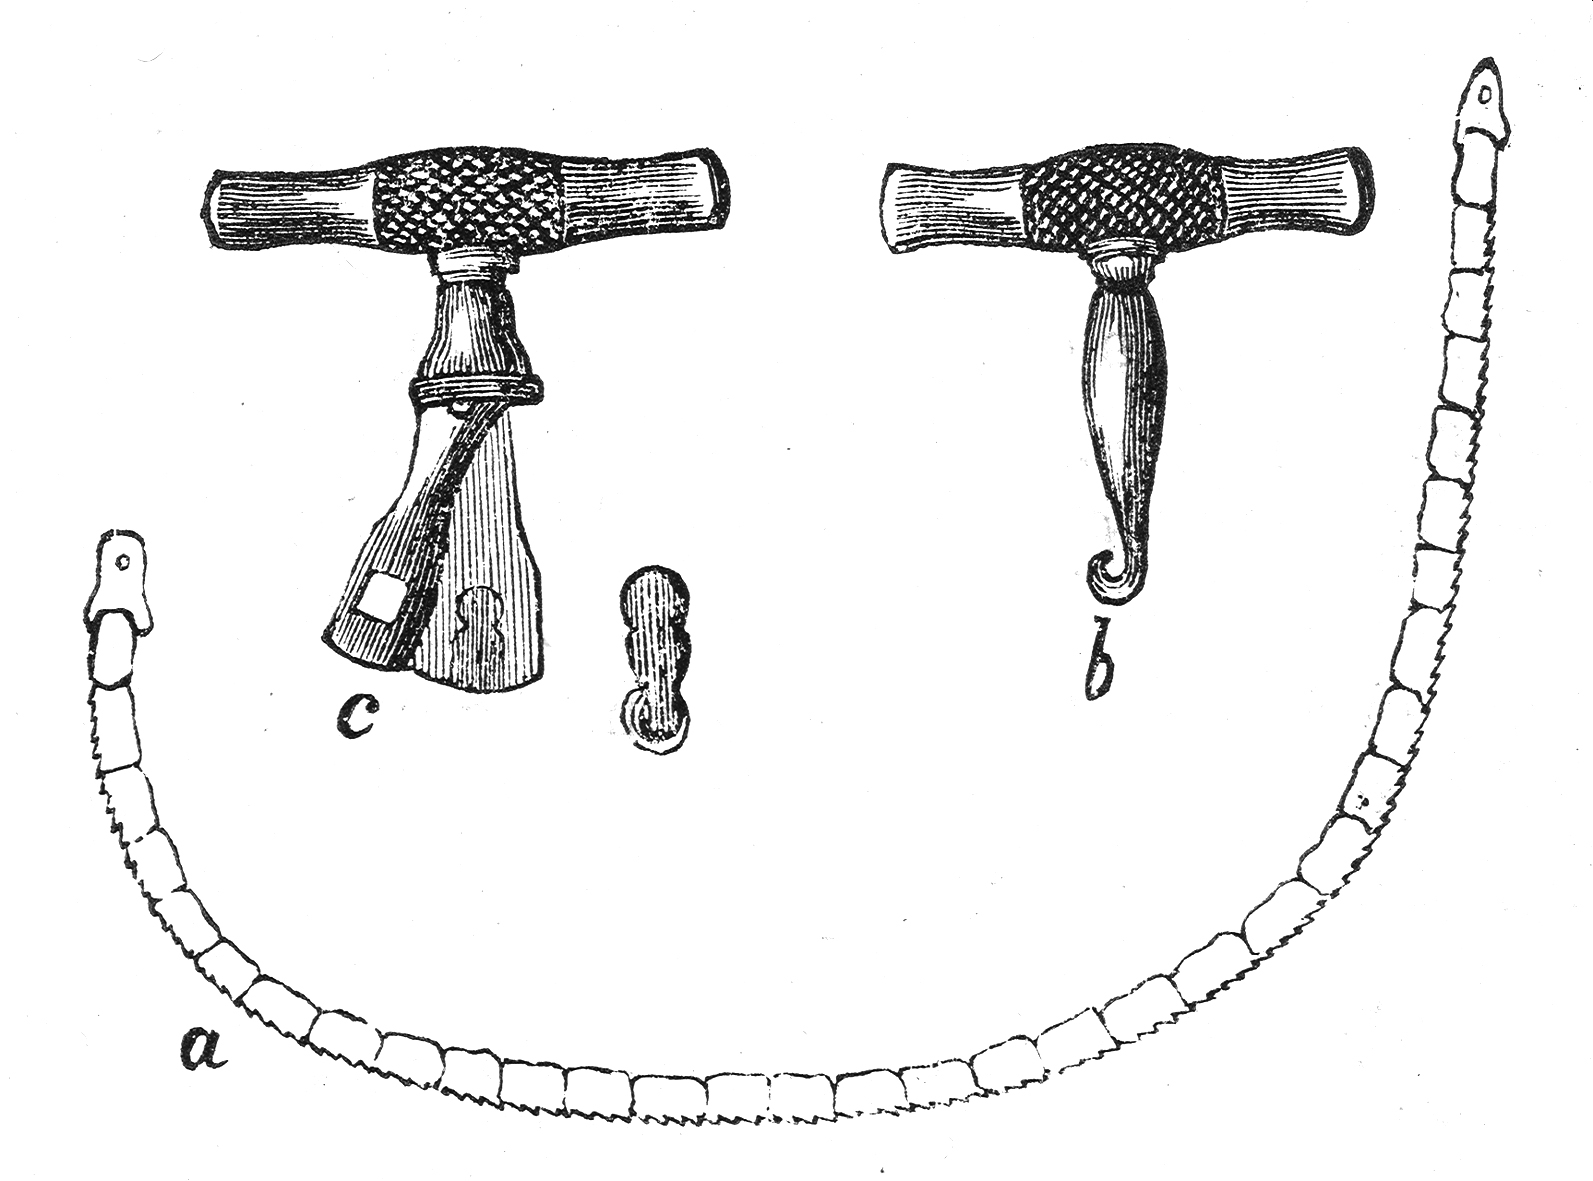 Surgical chain saw